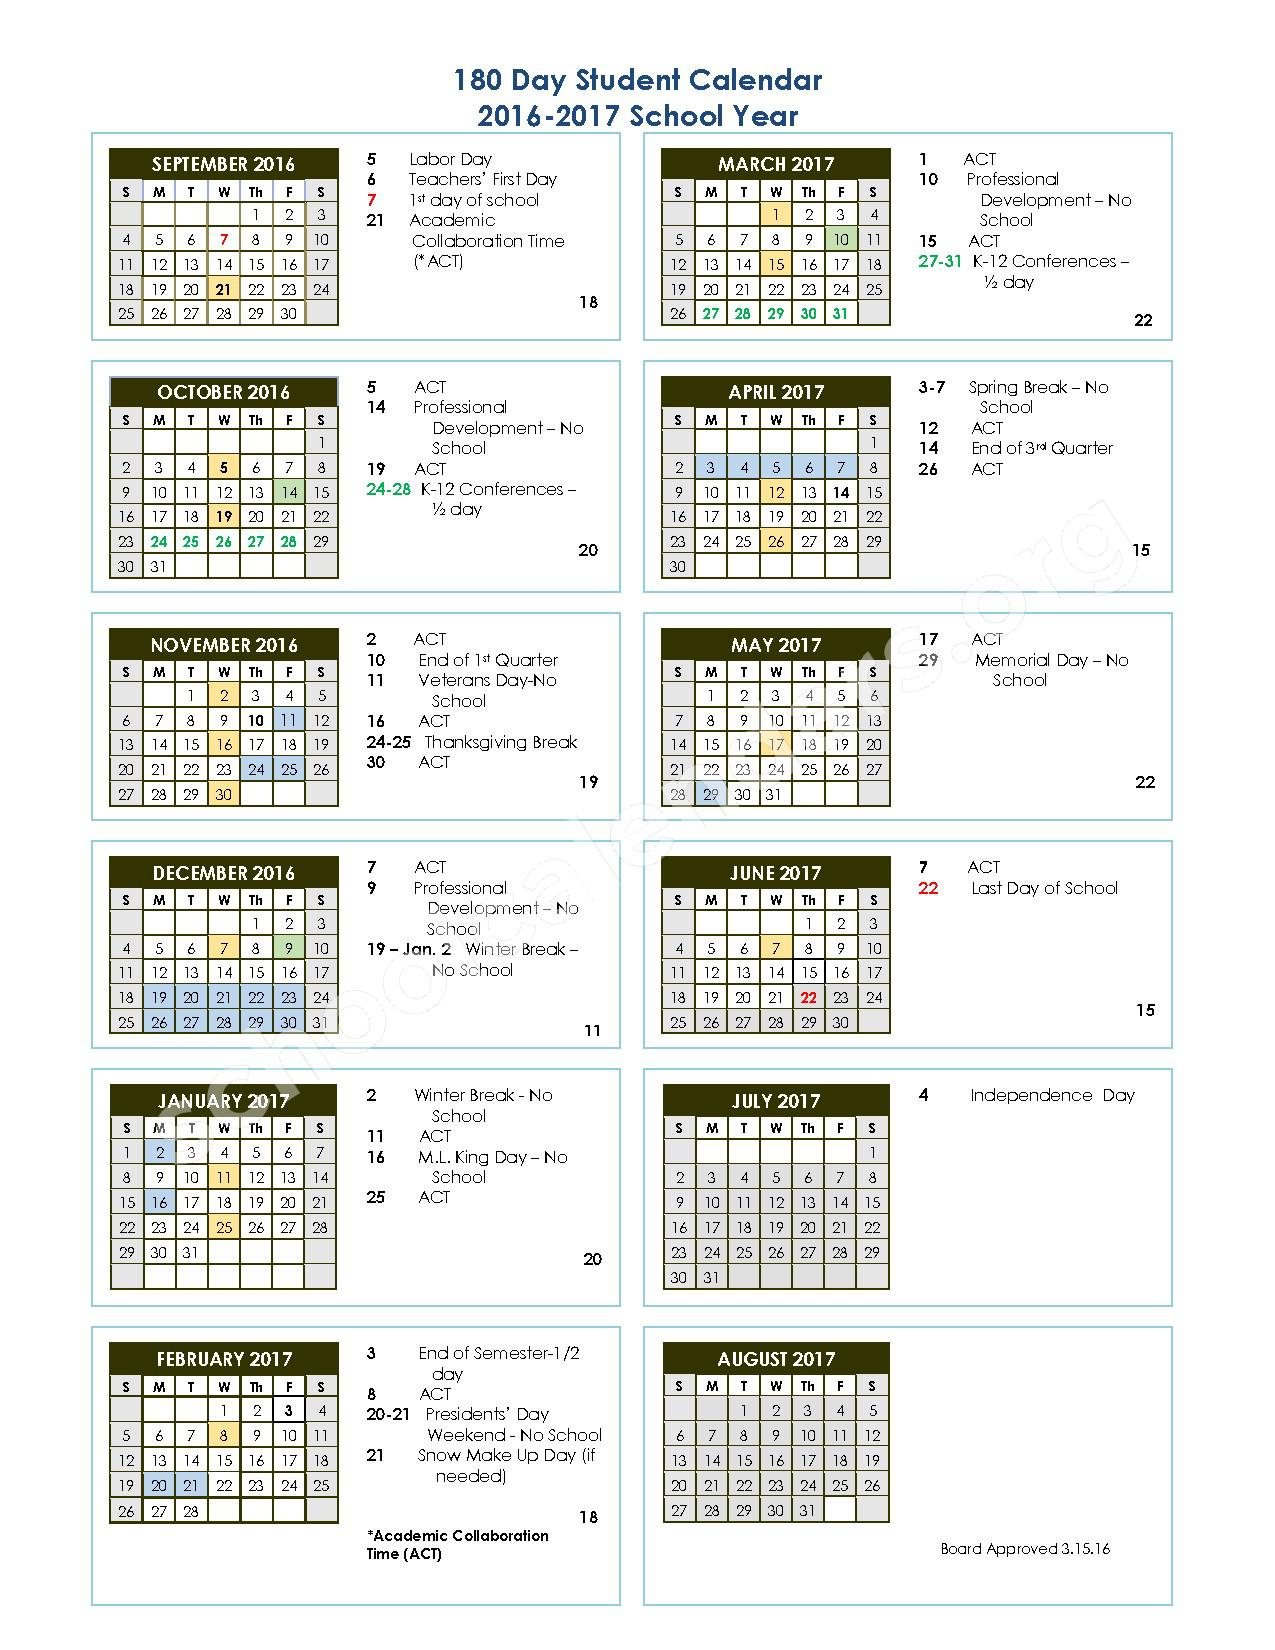 2016 - 2017 180-day Student Calendar – Nisqually Middle School – page 1